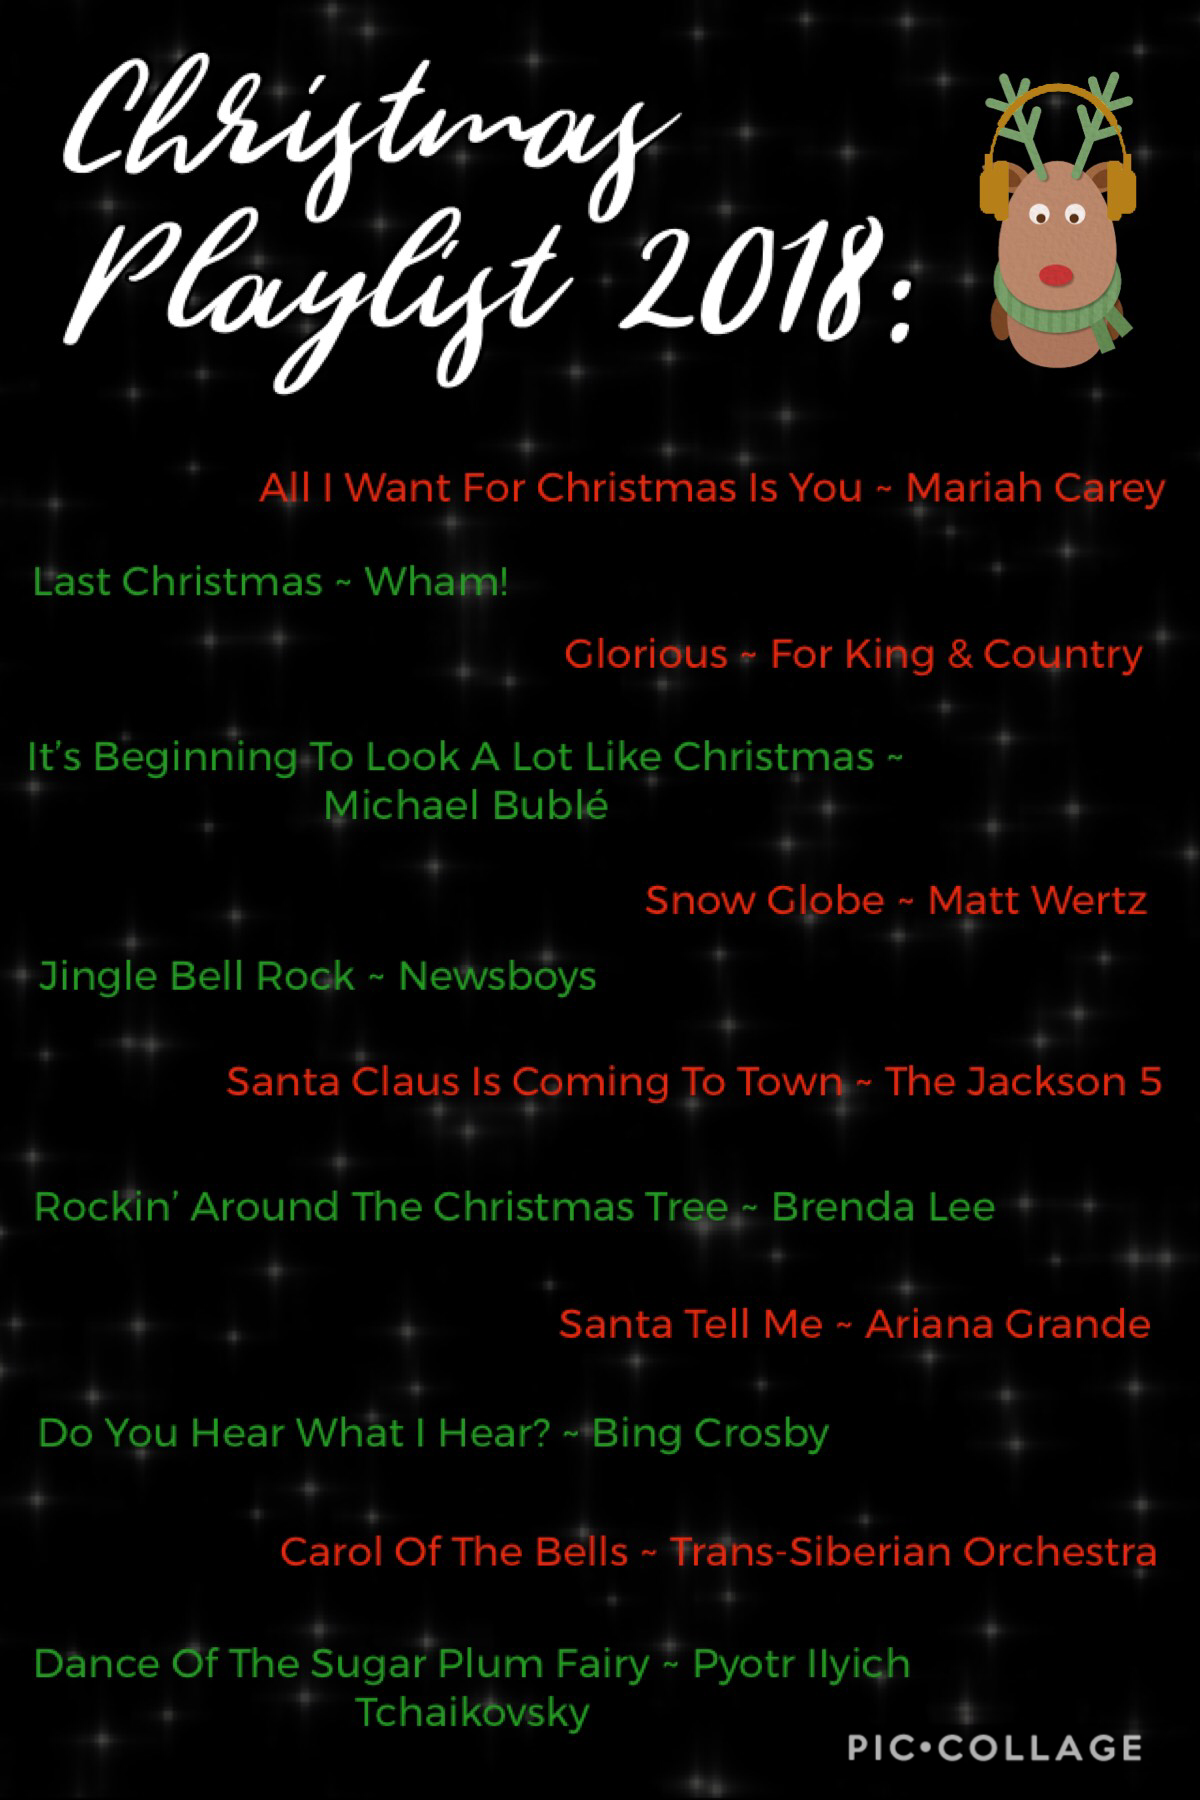 I've had most of these songs on repeat this month, so I thought I'd share them since I didn't post a playlist last year! 🎧 🦌 🗓 I would've posted it sooner but I've been pretty busy, I'm trying to enjoy Christmas irl even tho I'd love to catch up here... 🎄